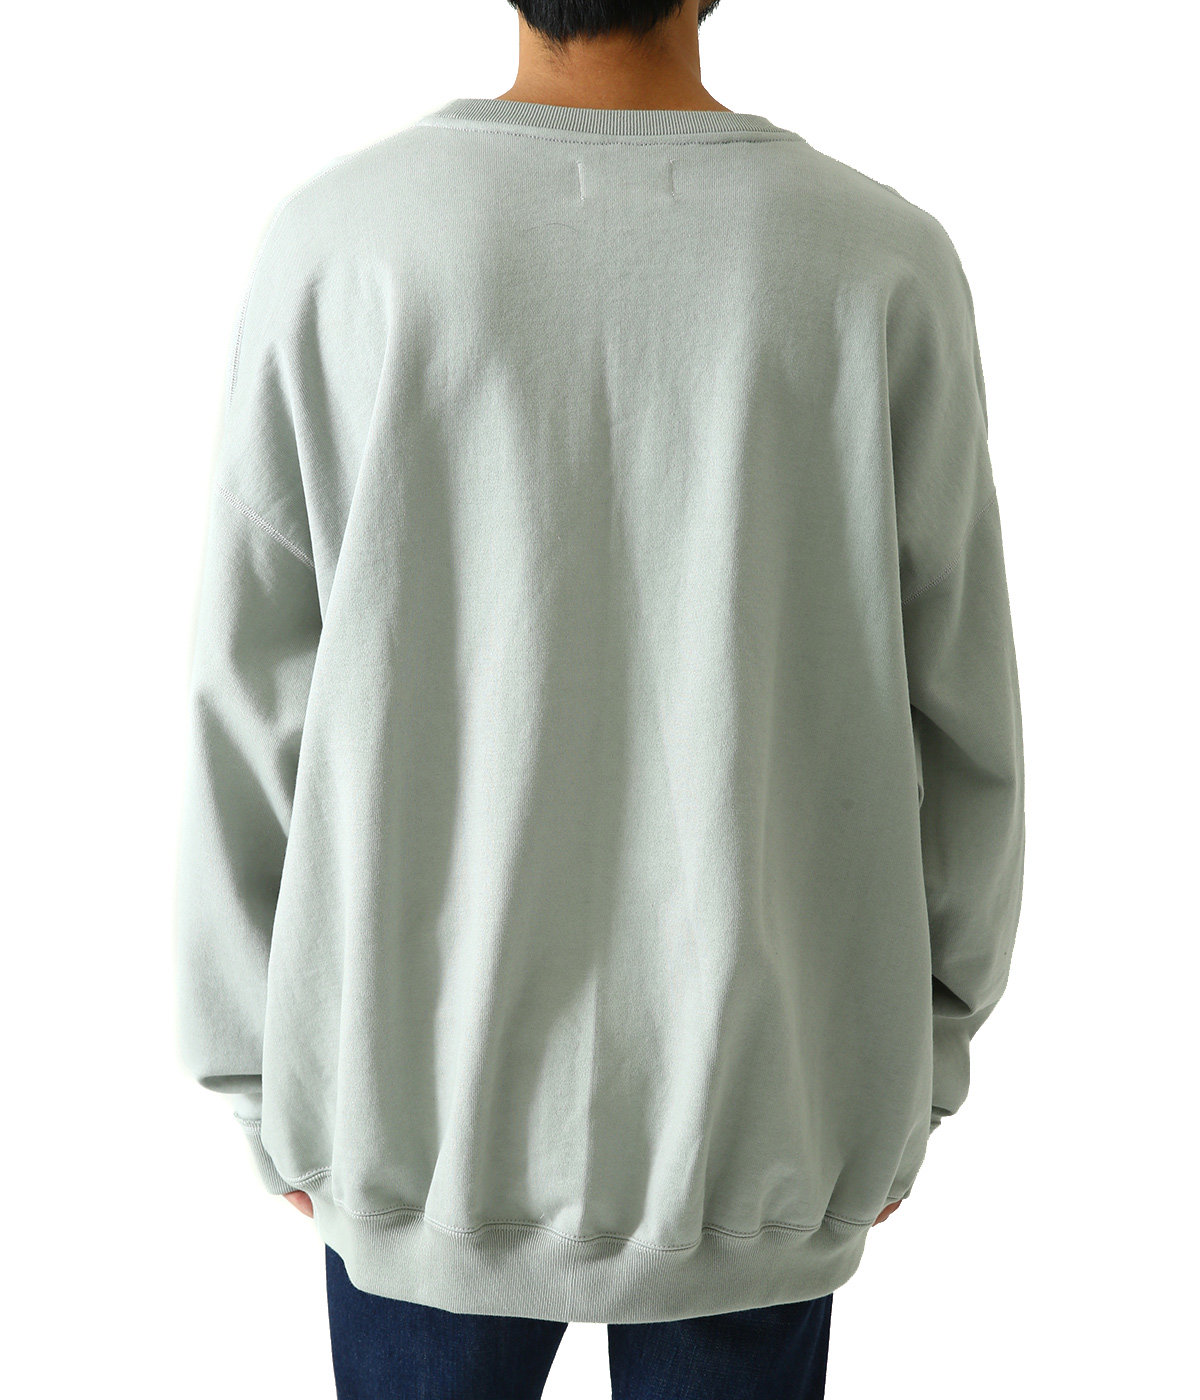 HUGE SWEAT SHIRTS